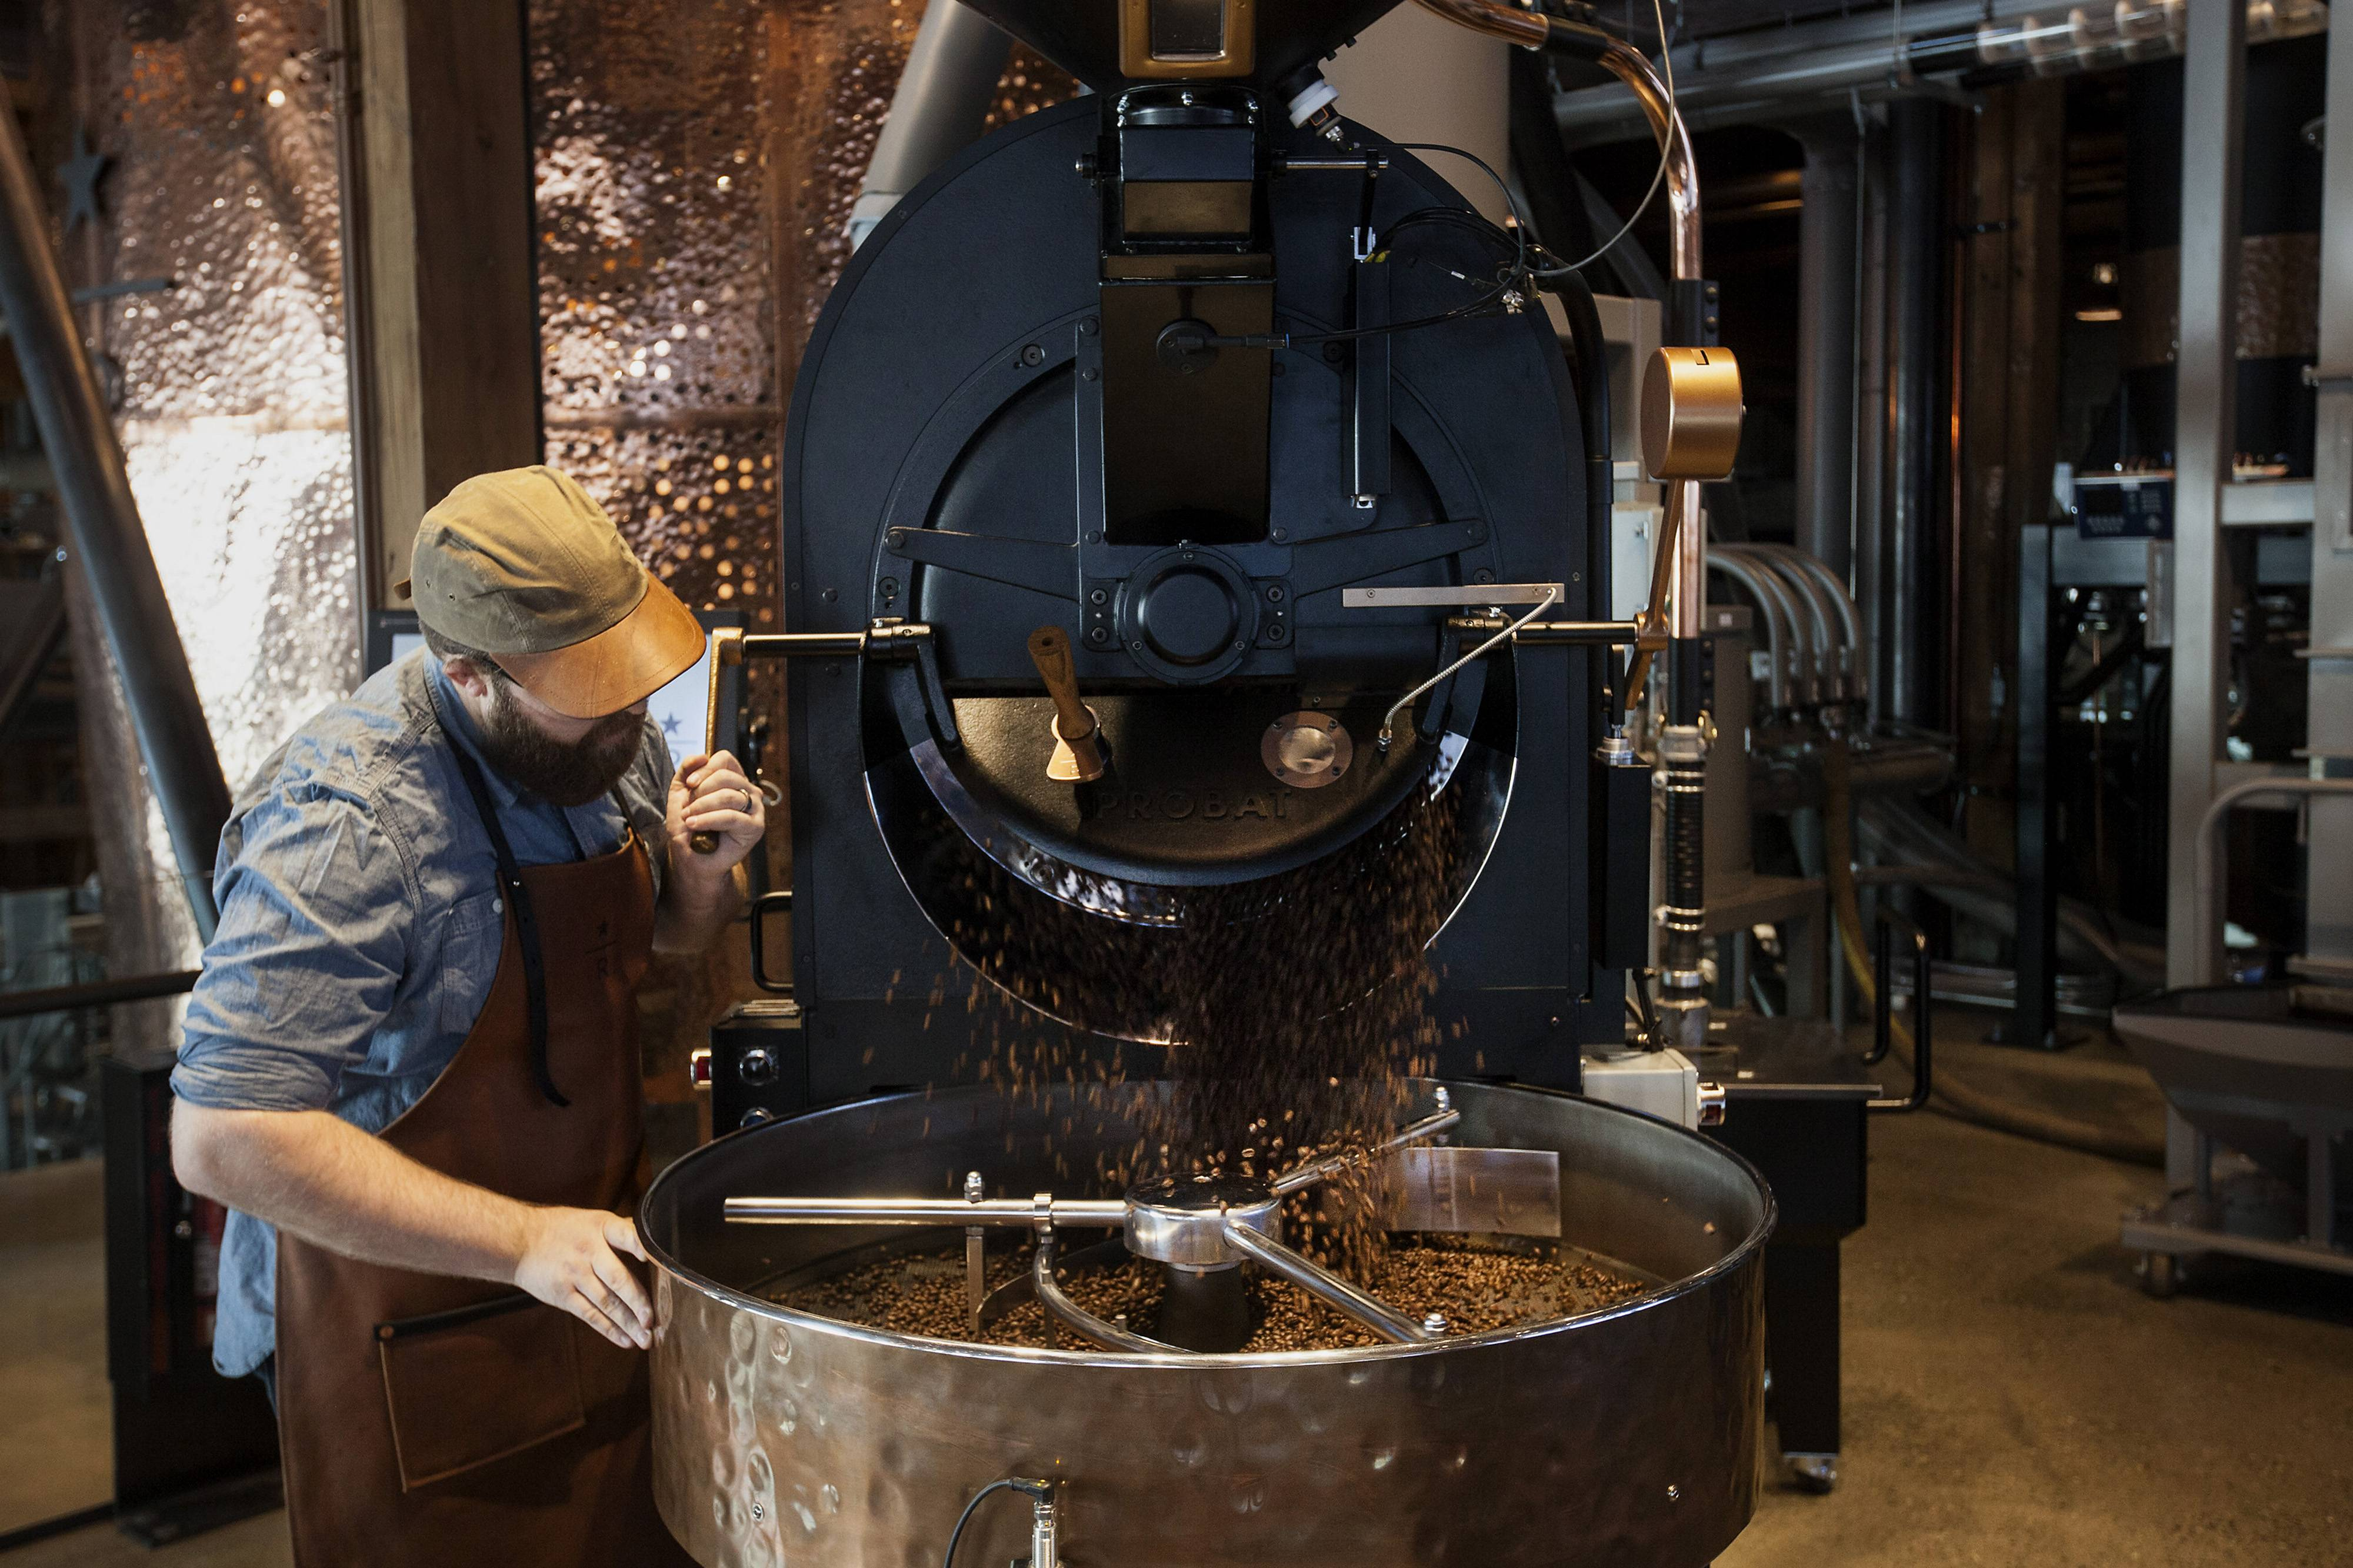 Starbucks Expands Reserve Coffee Line With New Seattle